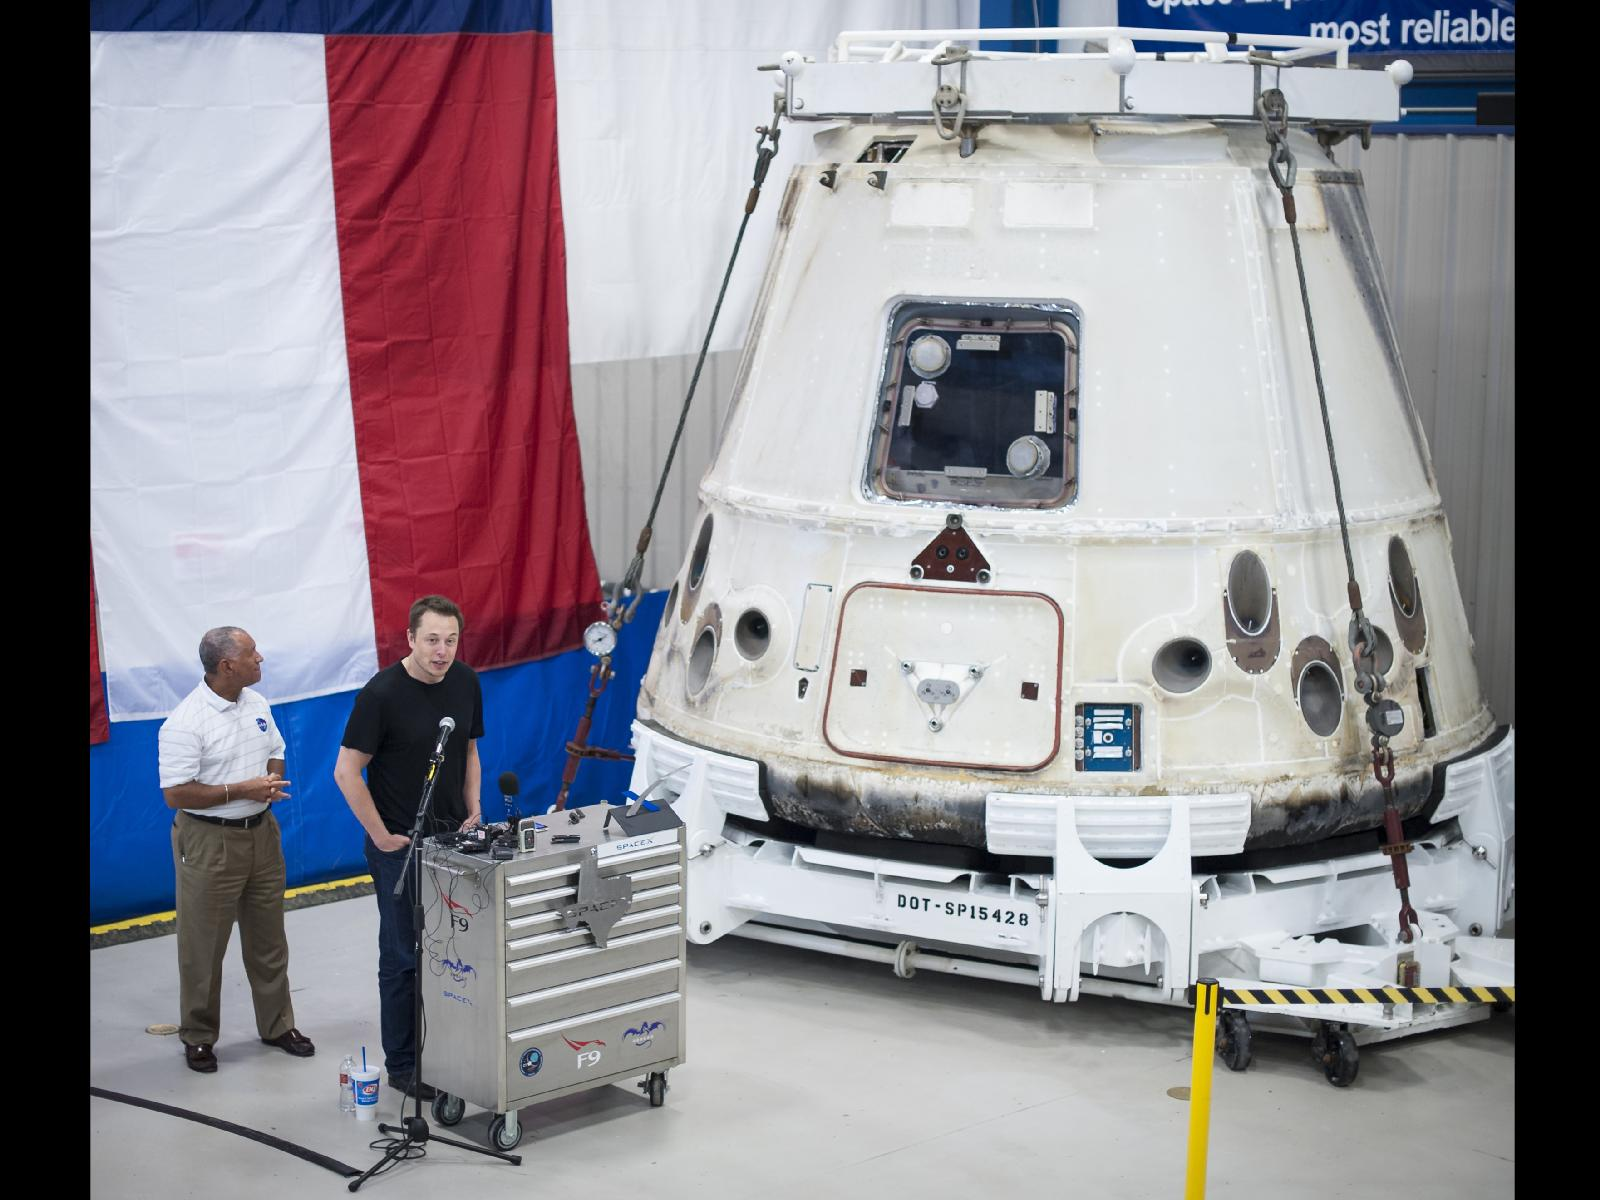 Bolden, Musk Admire History-Making Dragon Capsule